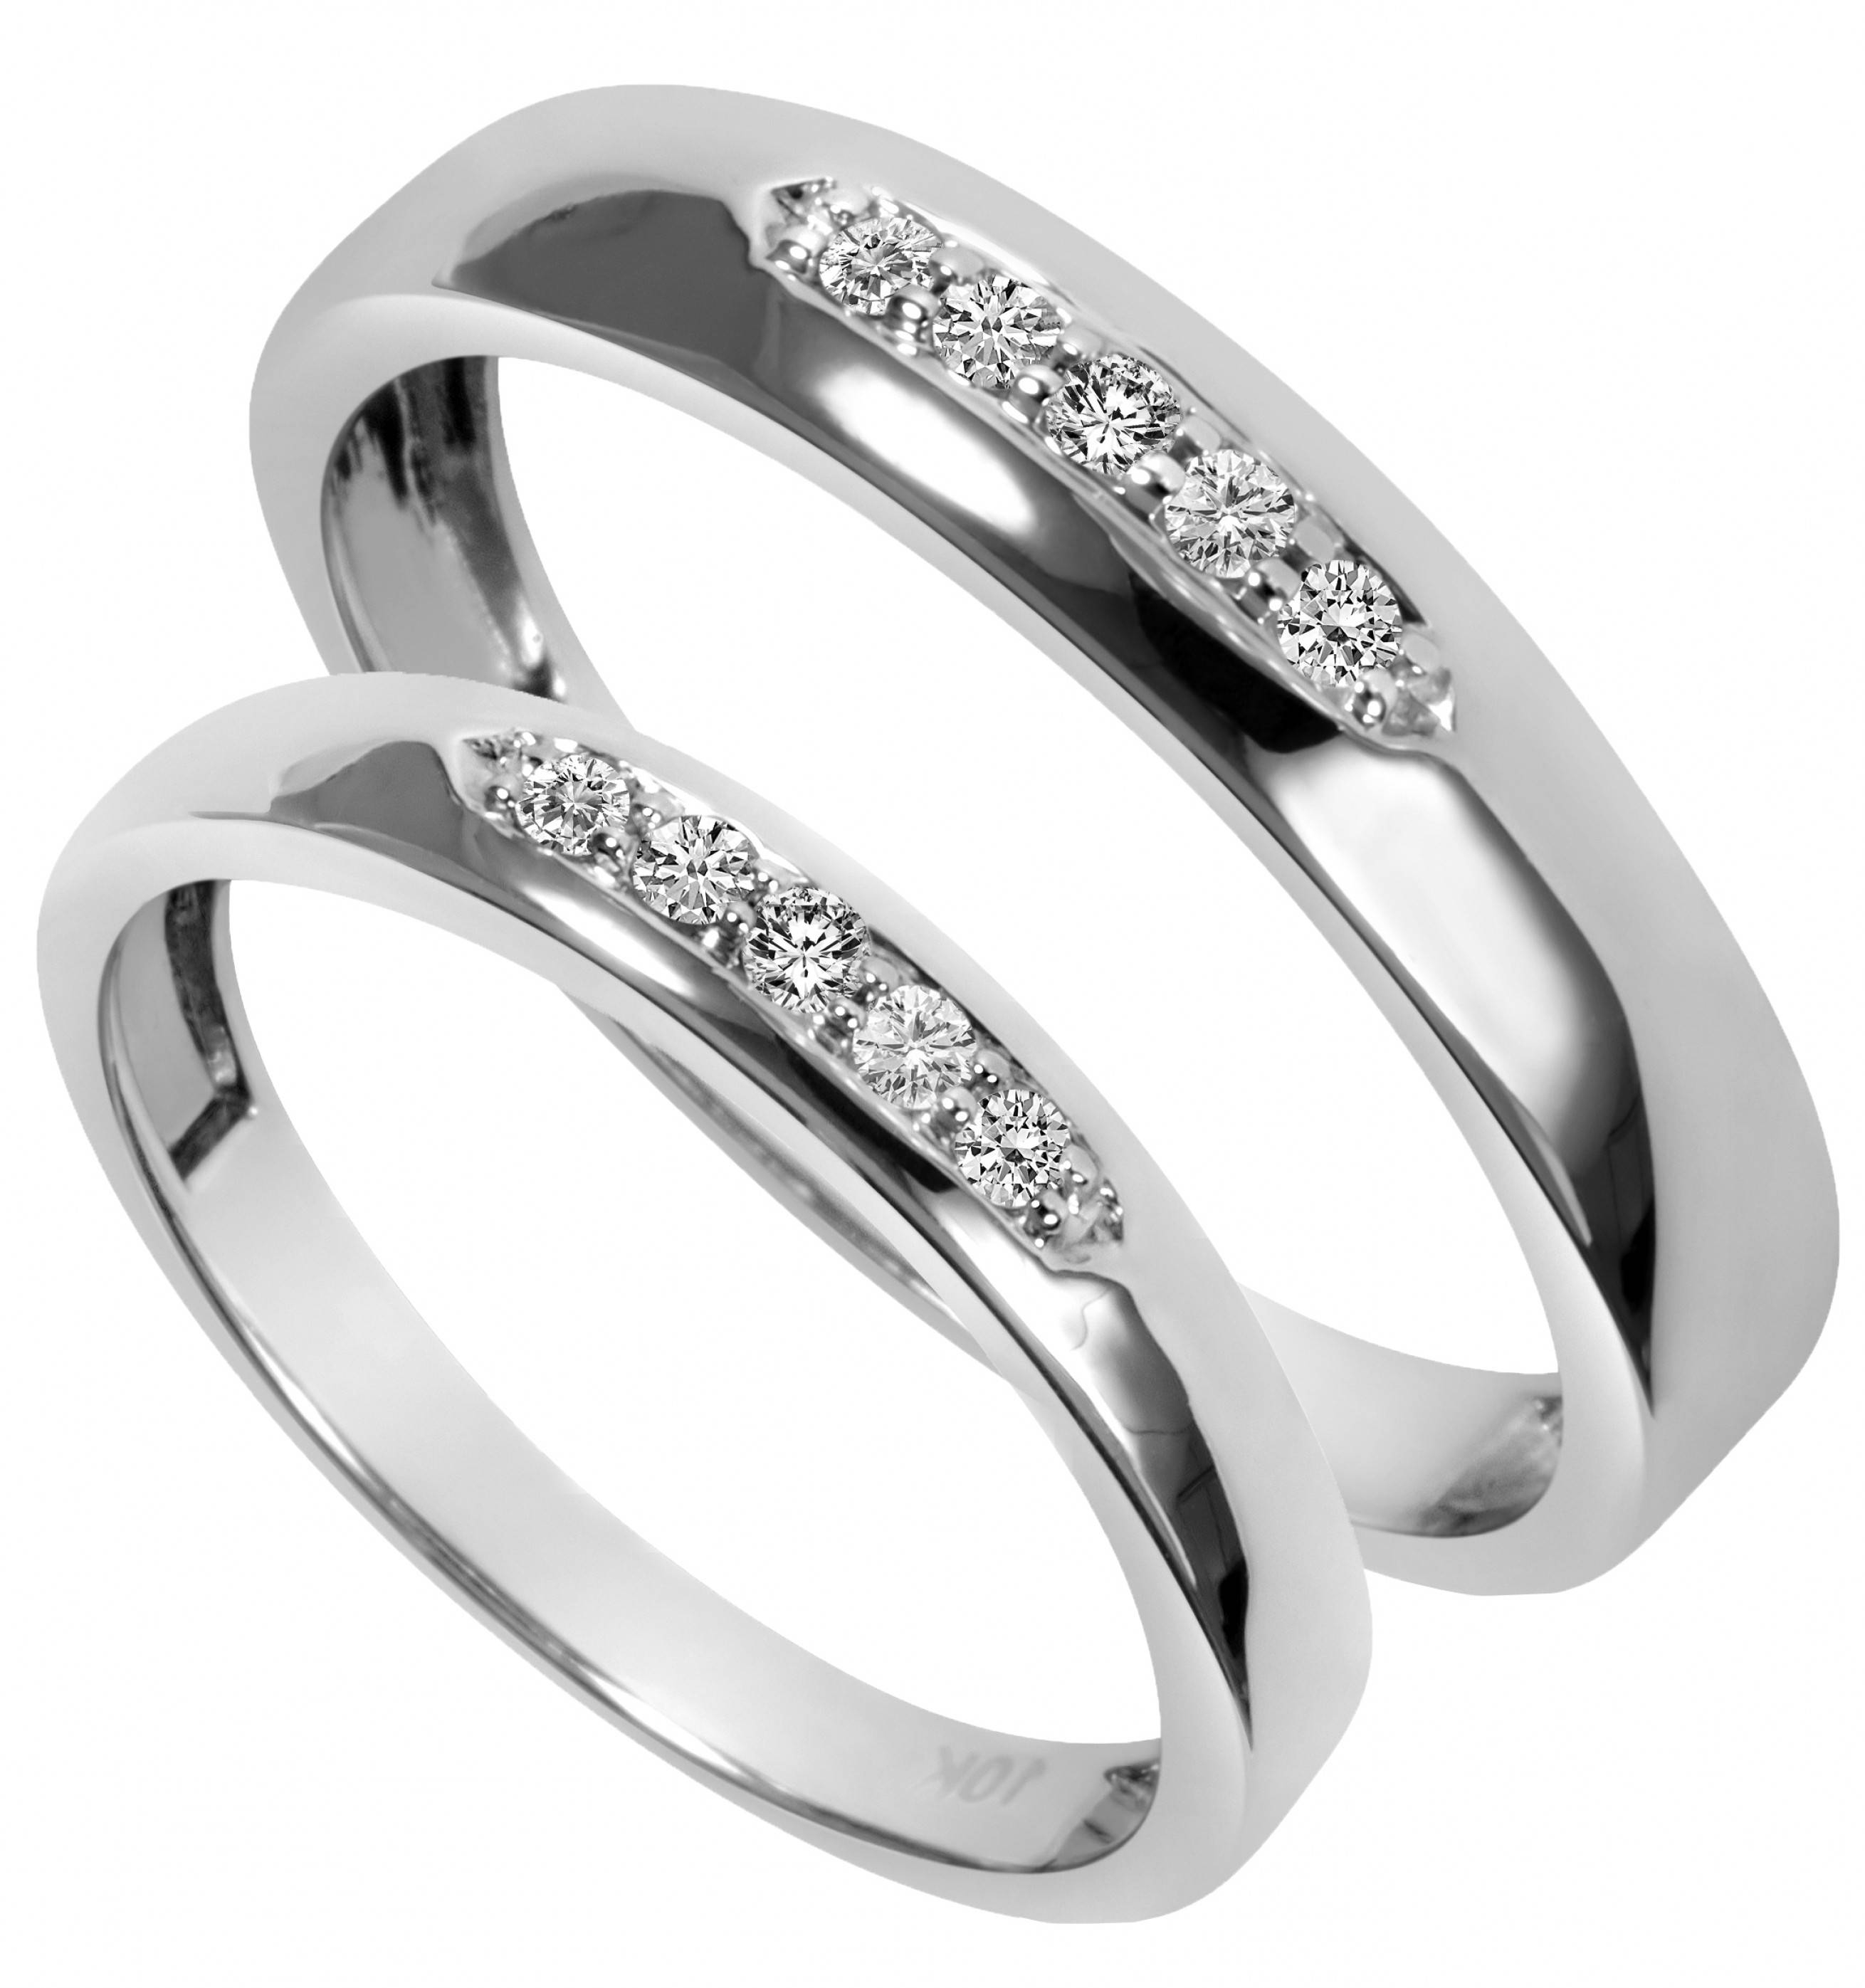 Wedding Rings For Her: 15 Collection Of Celtic Wedding Bands Sets